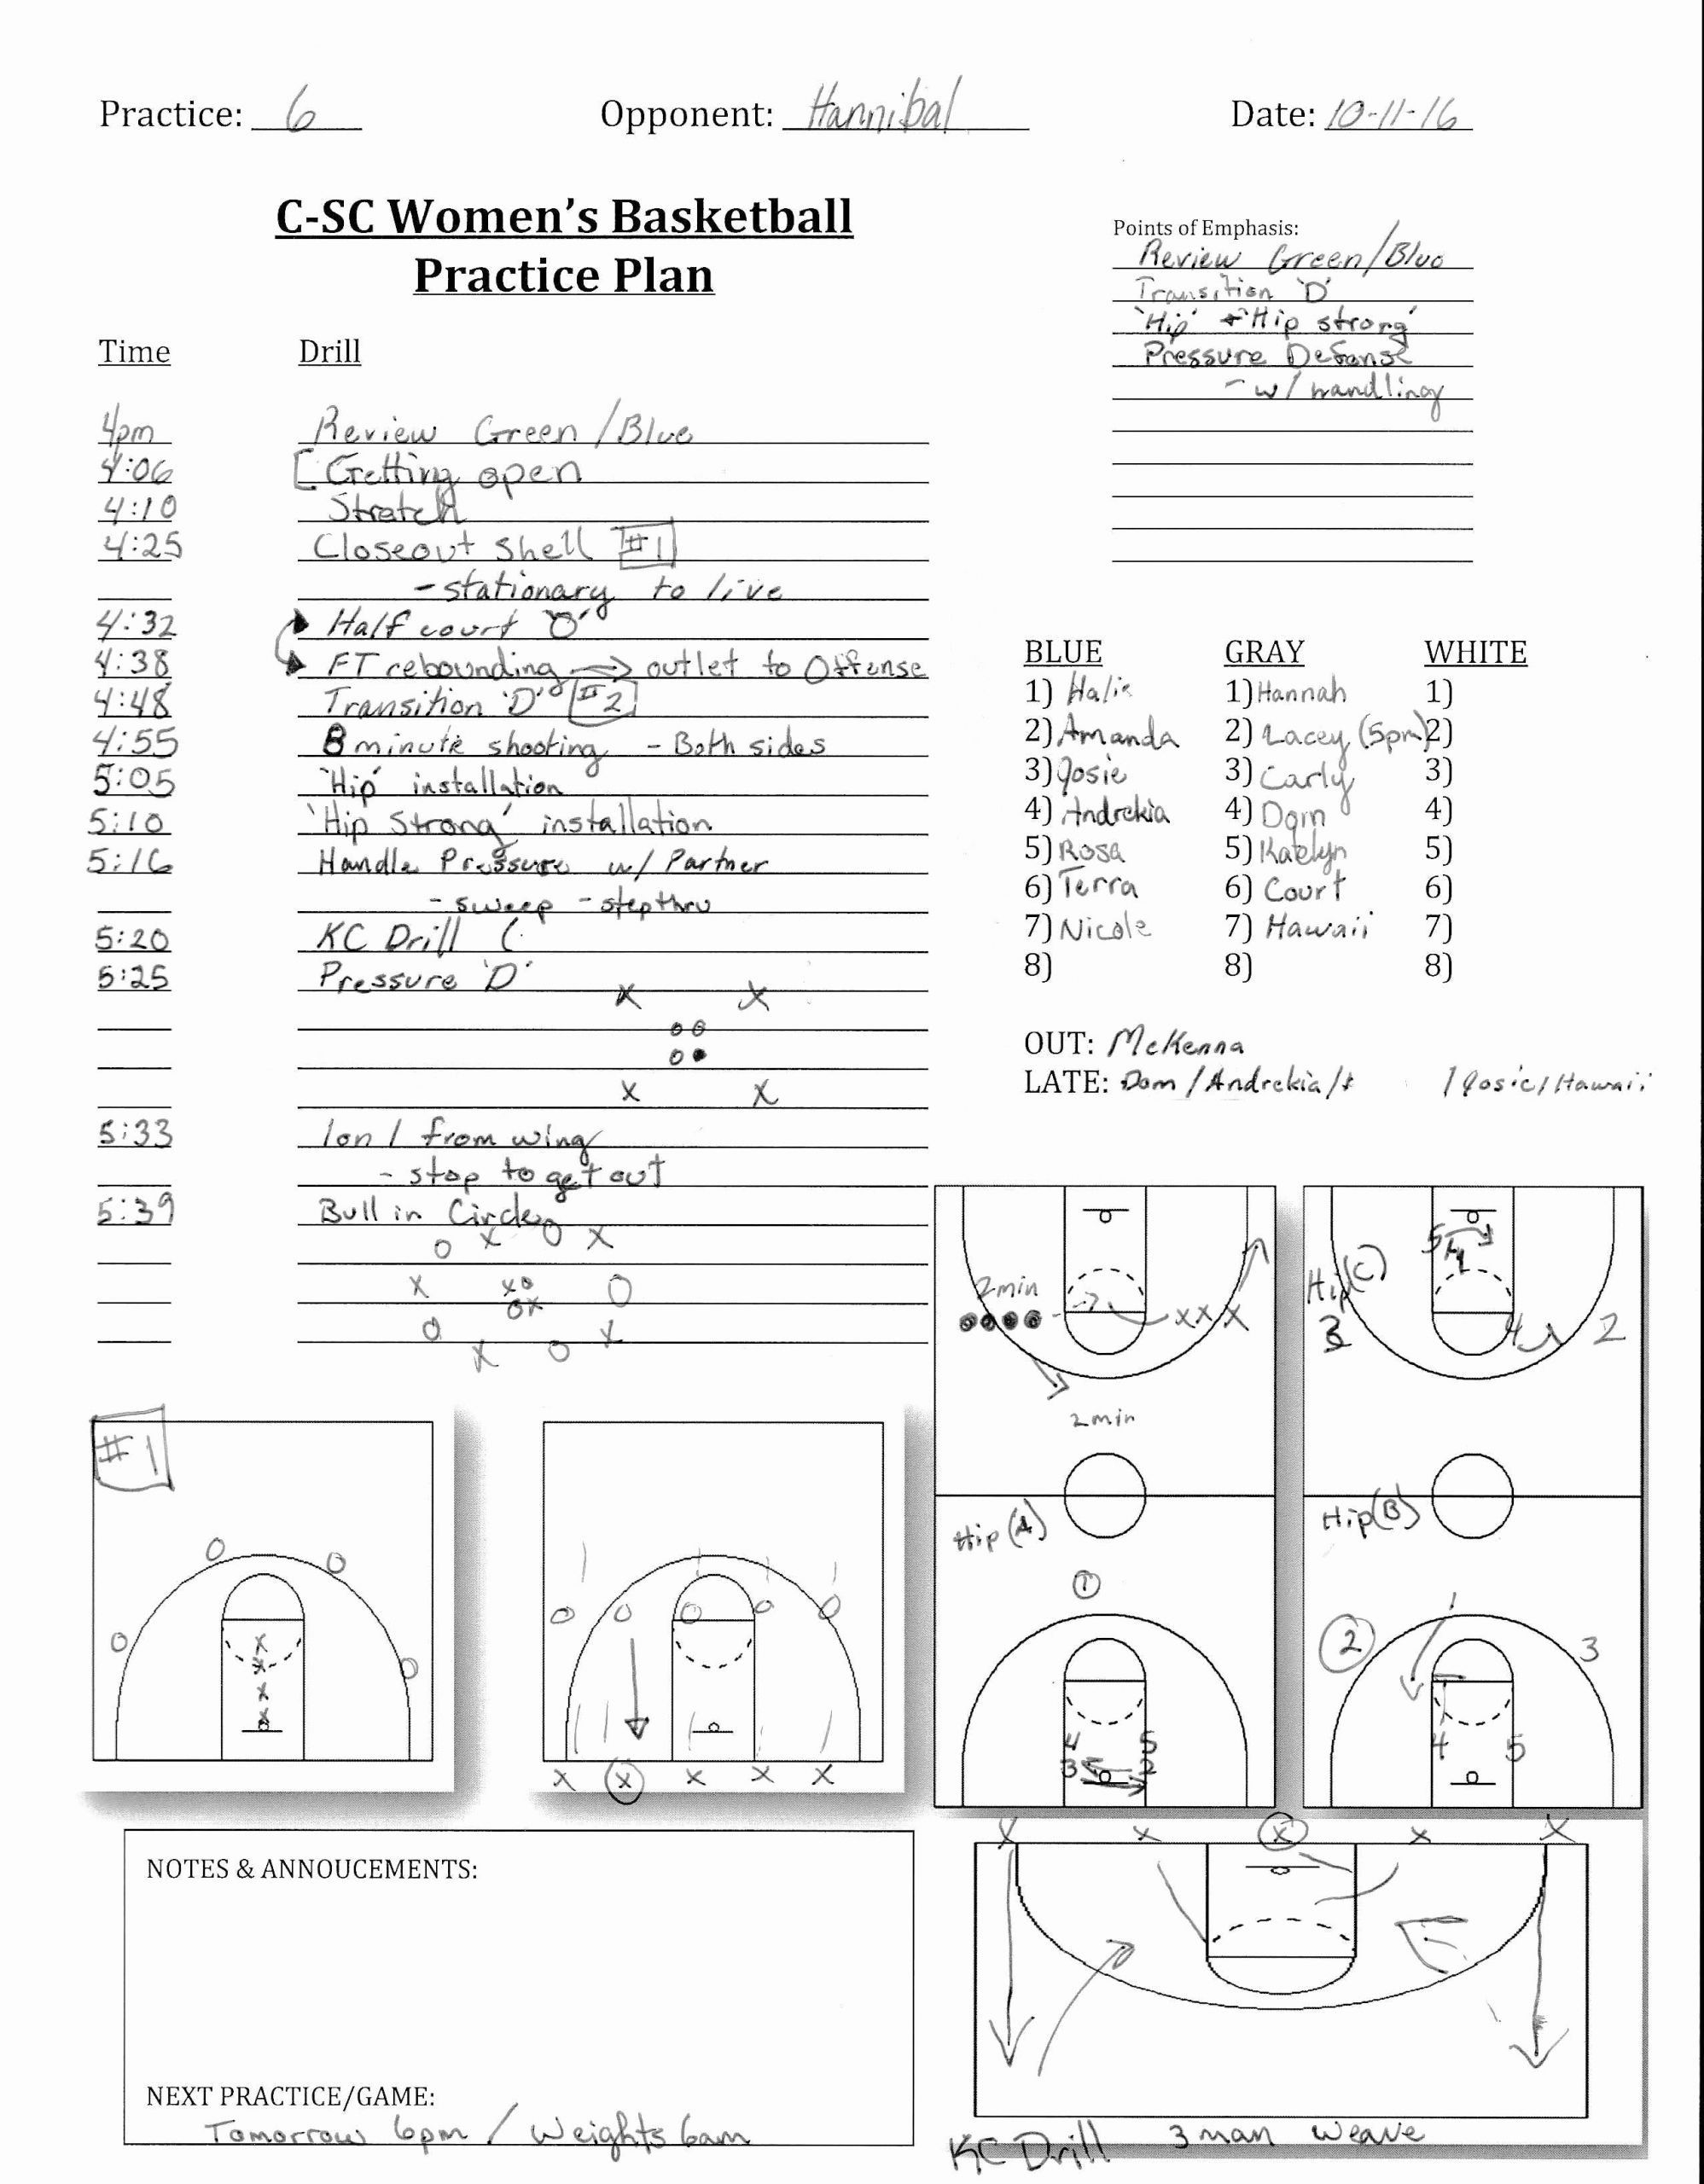 Practice Plan Template Basketball New Midwest Elite Basketball Culver Stockton Wbb Practice Basketball Practice Plans Basketball Practice Soccer Practice Plans Basketball practice plan template word